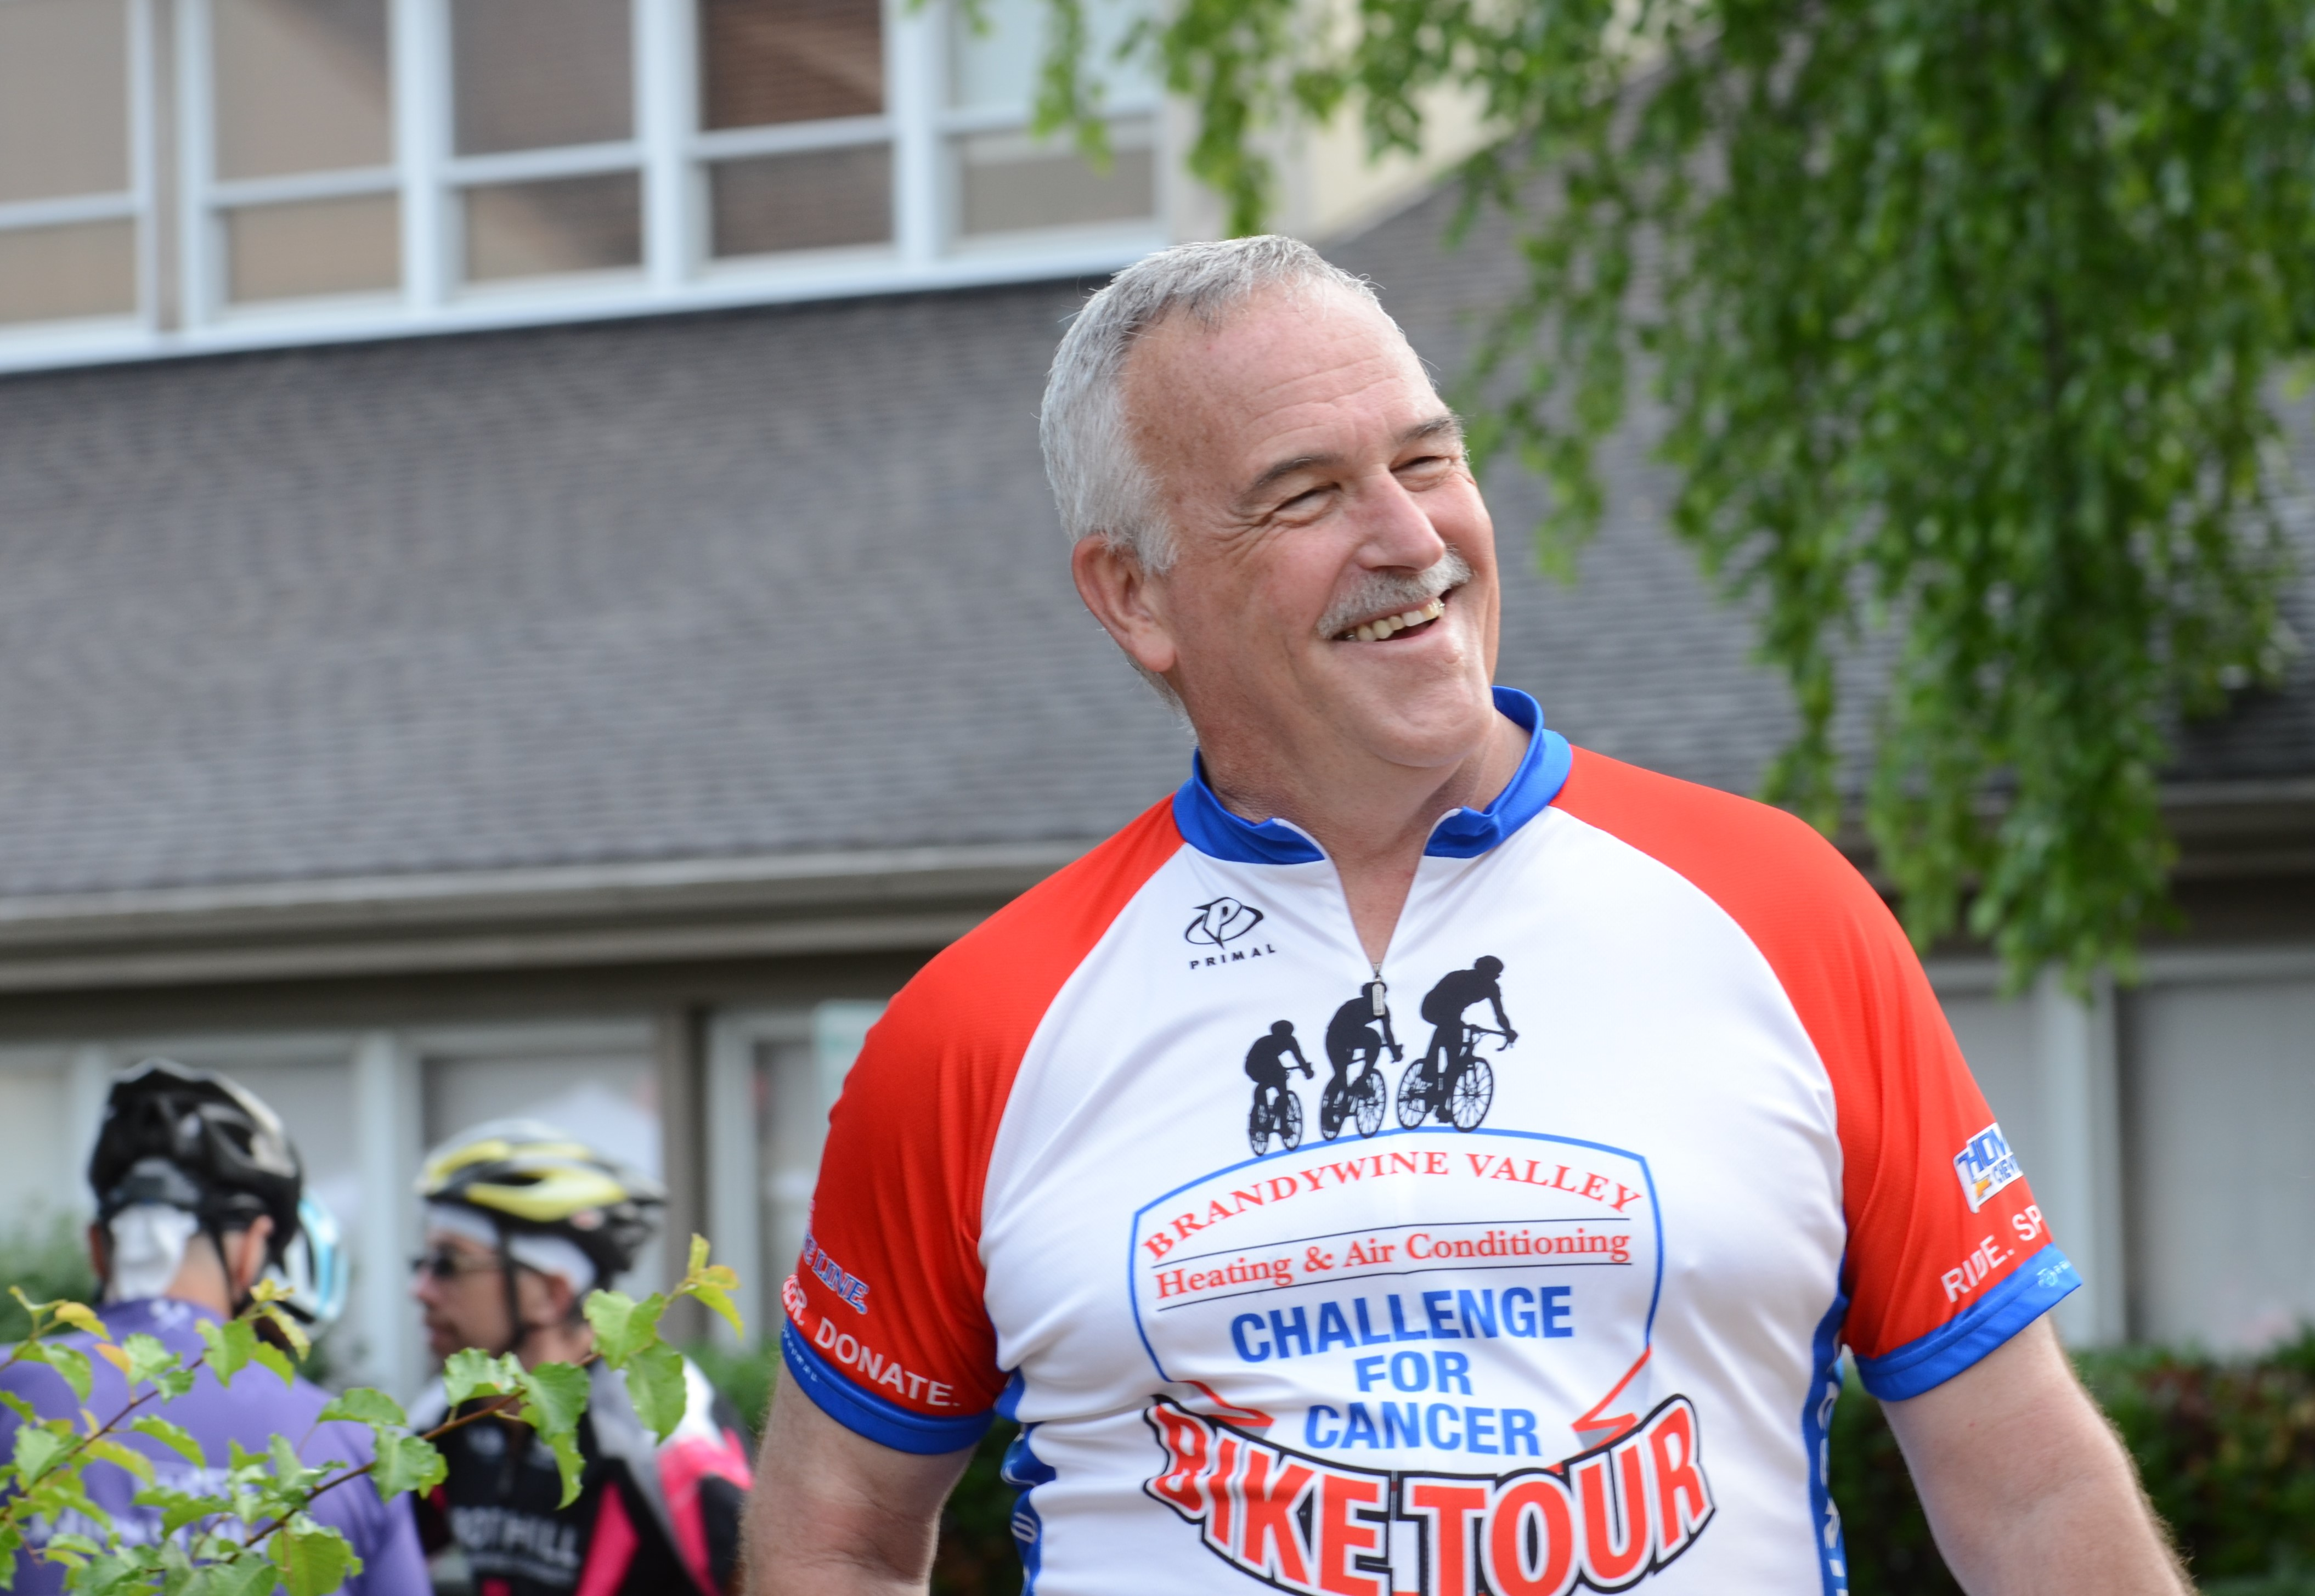 Twentieth Anniversary of Brandywine Valley HVAC Challenge For Cancer Bike Tour Set for Sunday